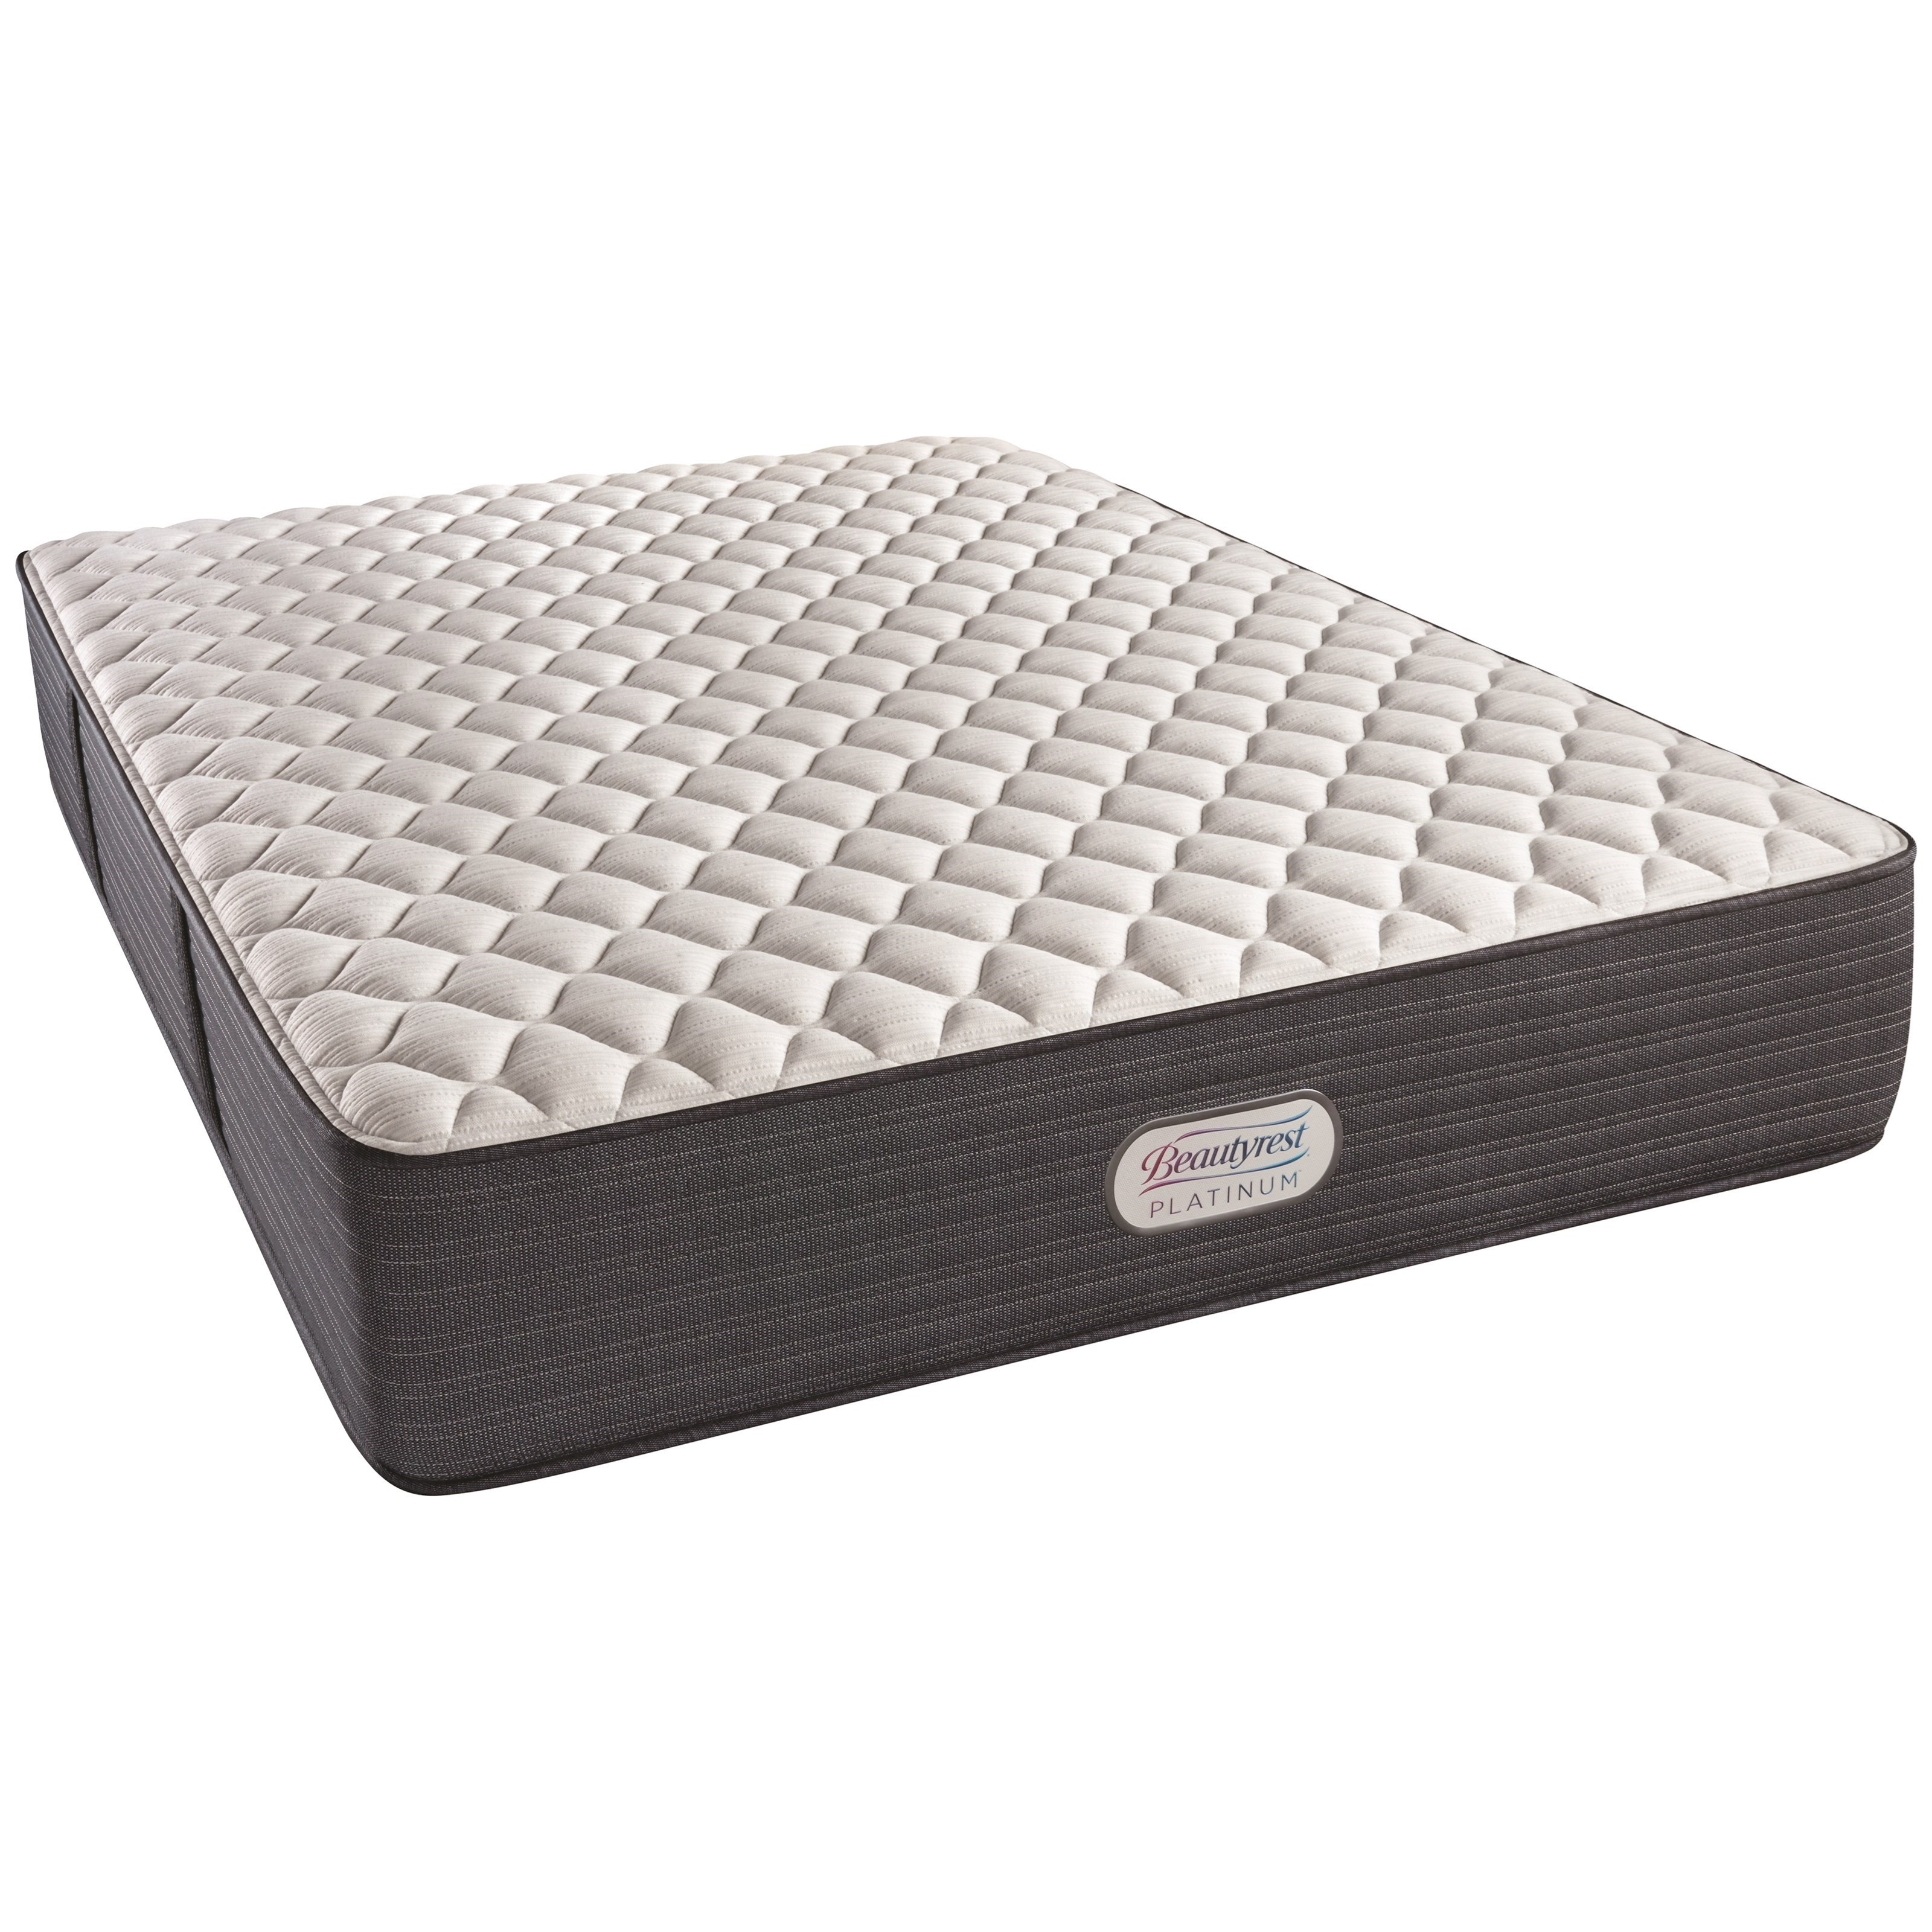 "Full 13 1/2"" Extra Firm Platinum Mattress"